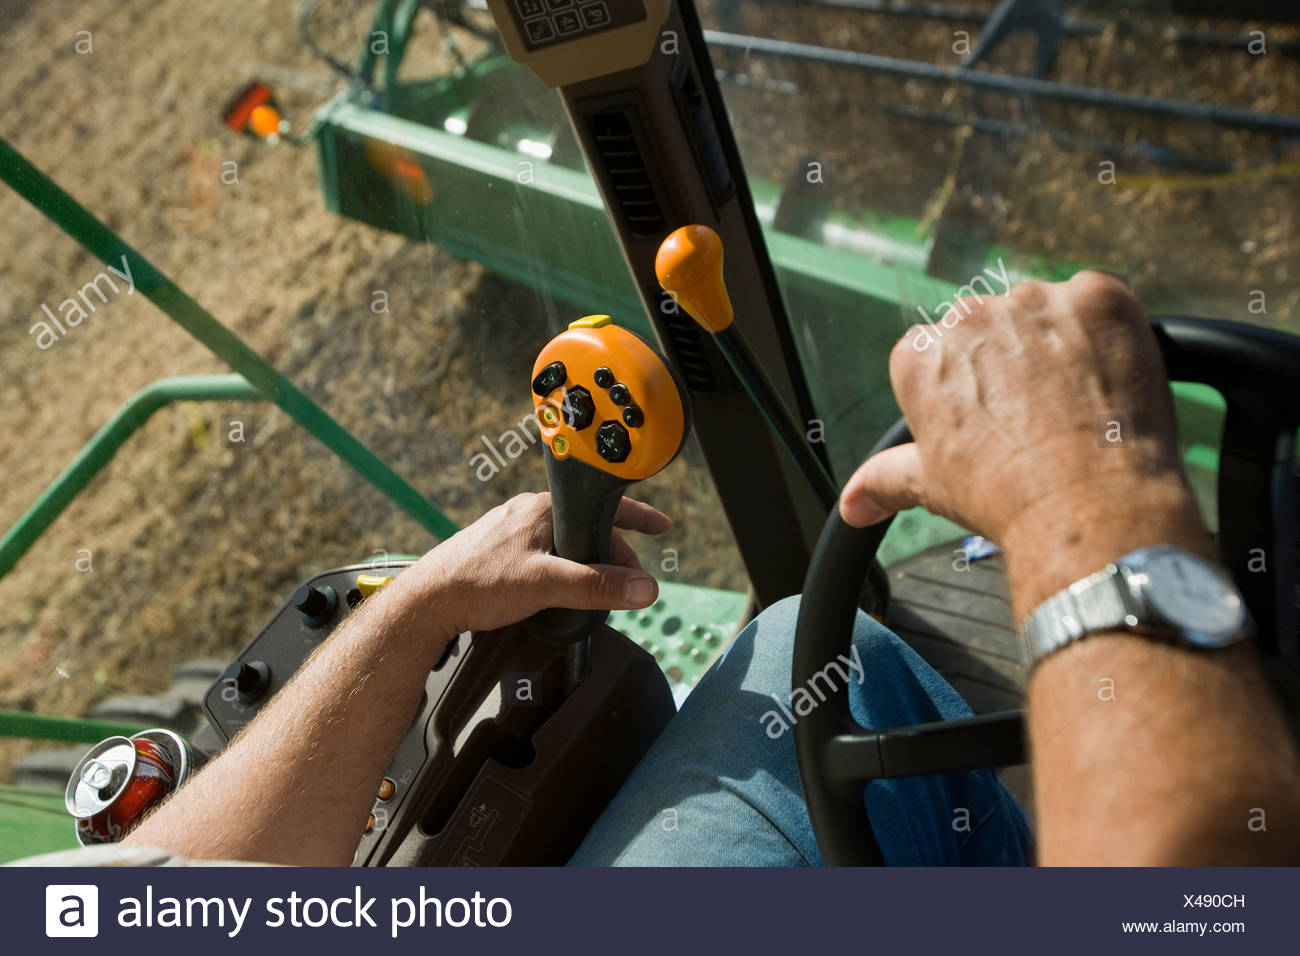 Agriculture - The hands of a farmer operating the controls of a combine during the soybean harvest / Northland, Minnesota, USA. - Stock Image